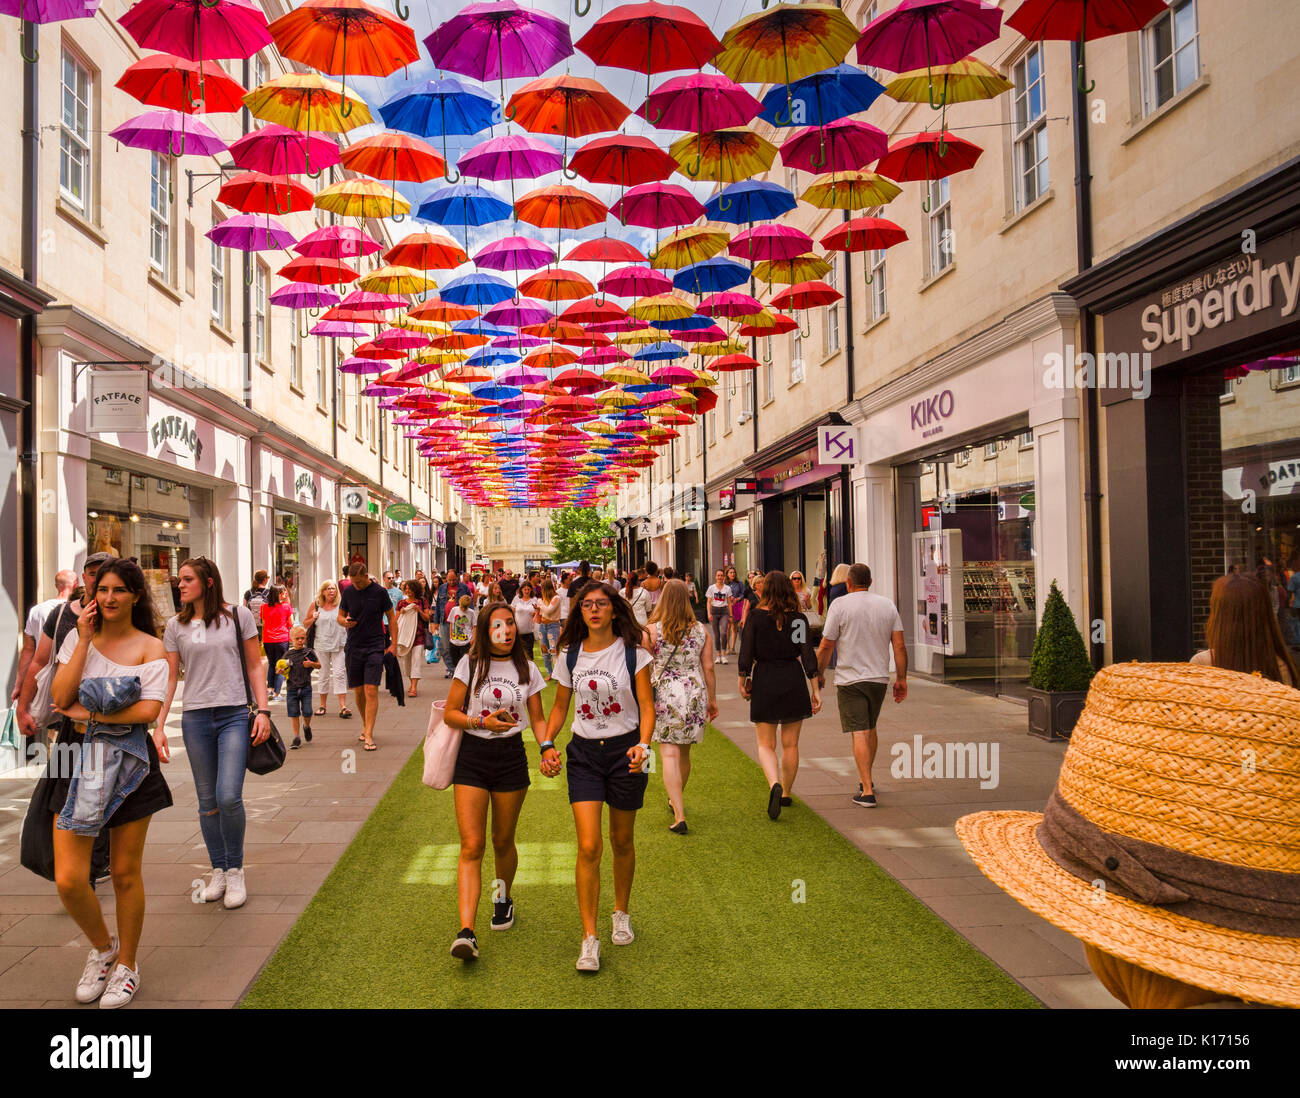 8 July 2017: Bath, Somerset, England, UK - Shopping in the SouthGate shopping centre. Above is the city's installation of 1000 umbrellas. - Stock Image